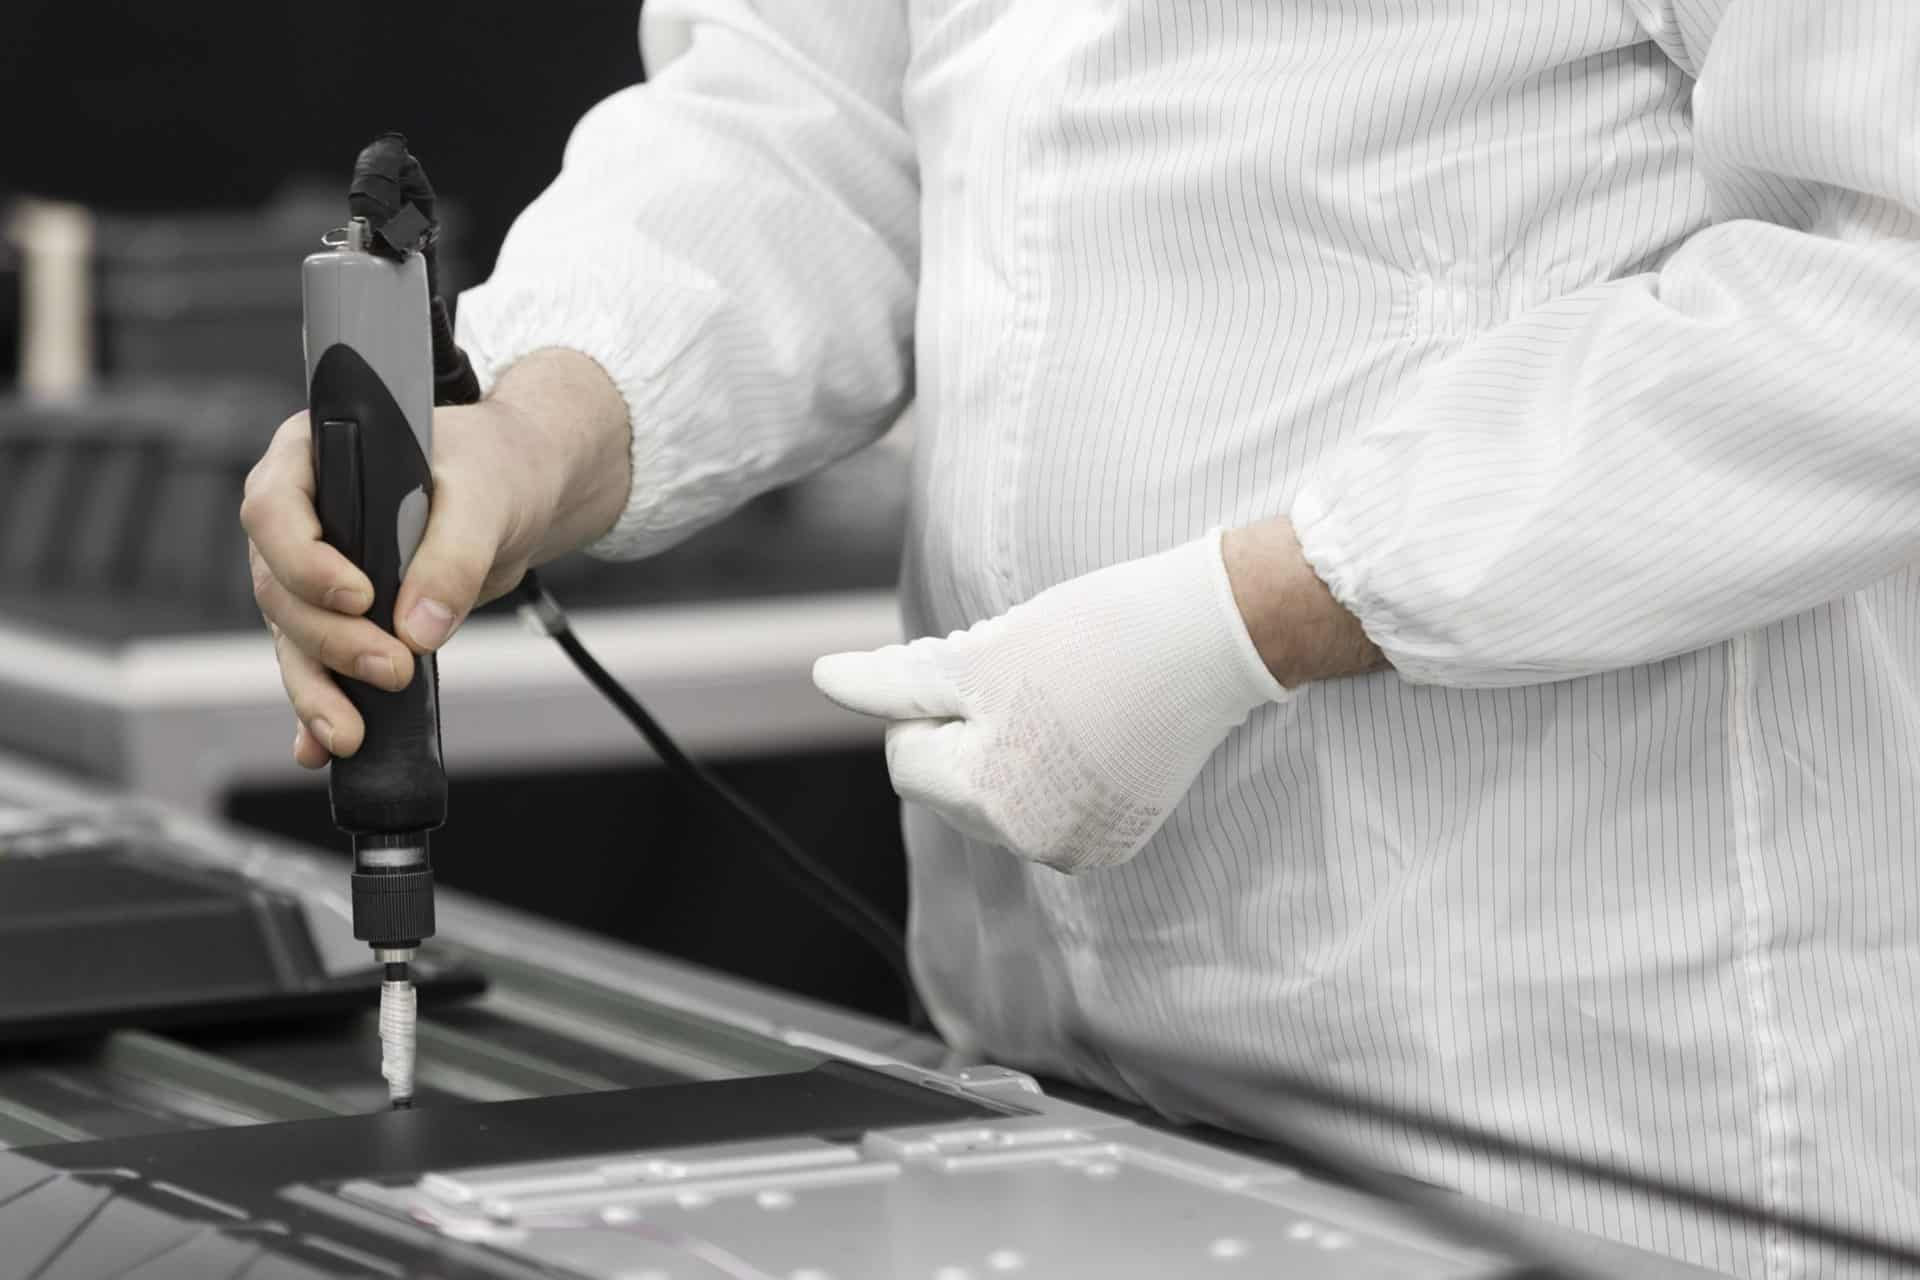 Webinar: Automated Screwdriving Assembly for Consistent Product Quality Image